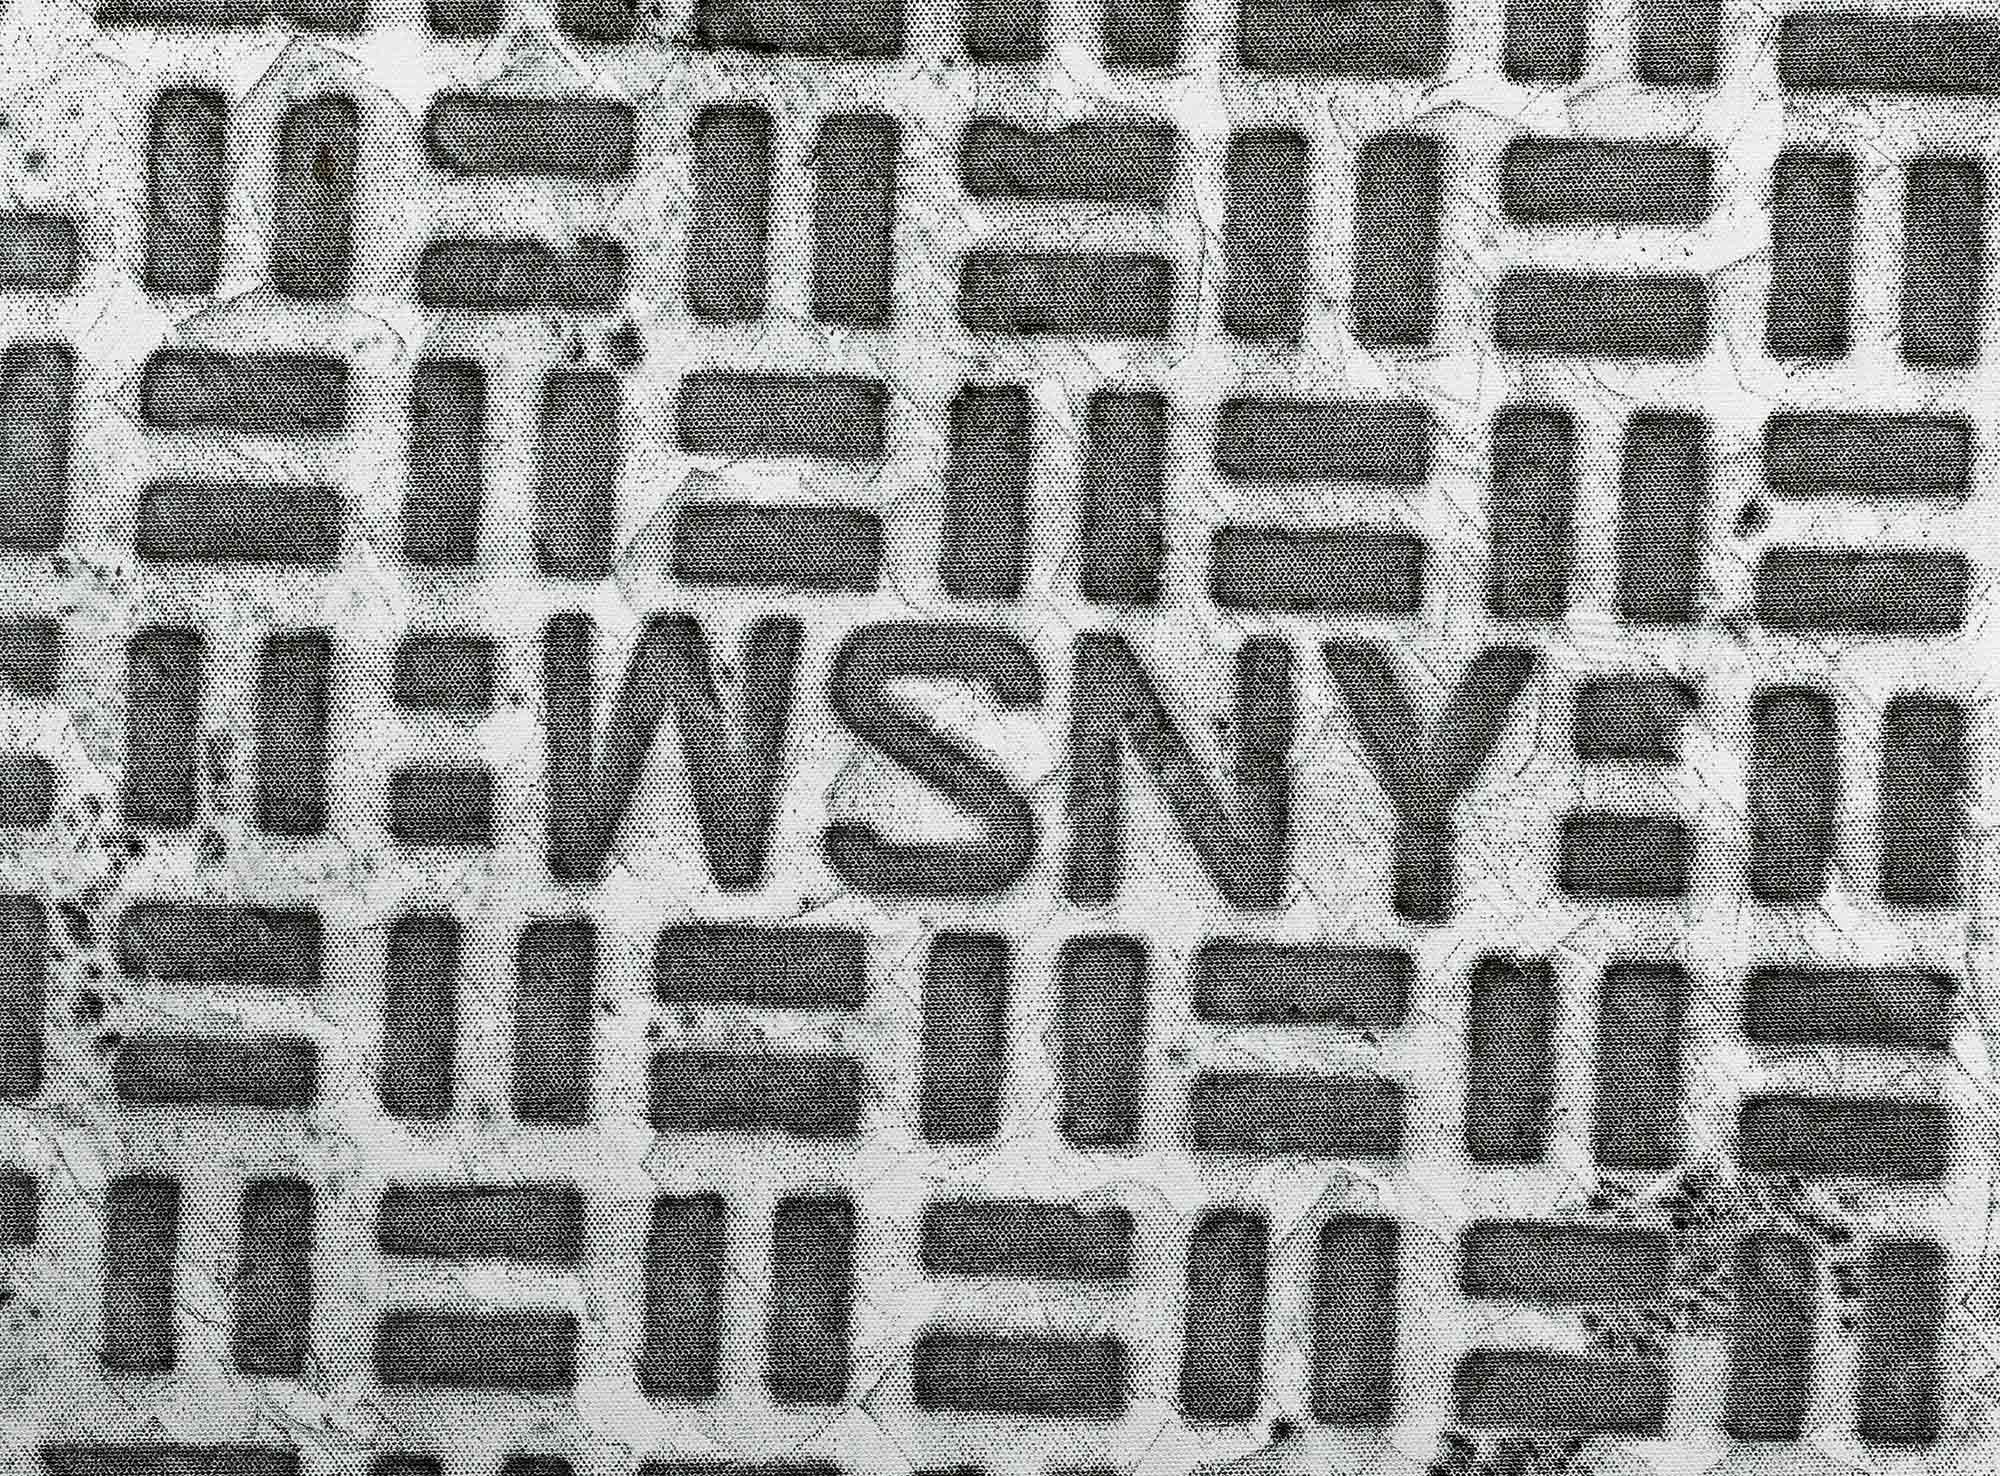 NYC-2016-WSNY-E-18th-at-3rd-Avenue-DETAIL-3-A-Jpeg